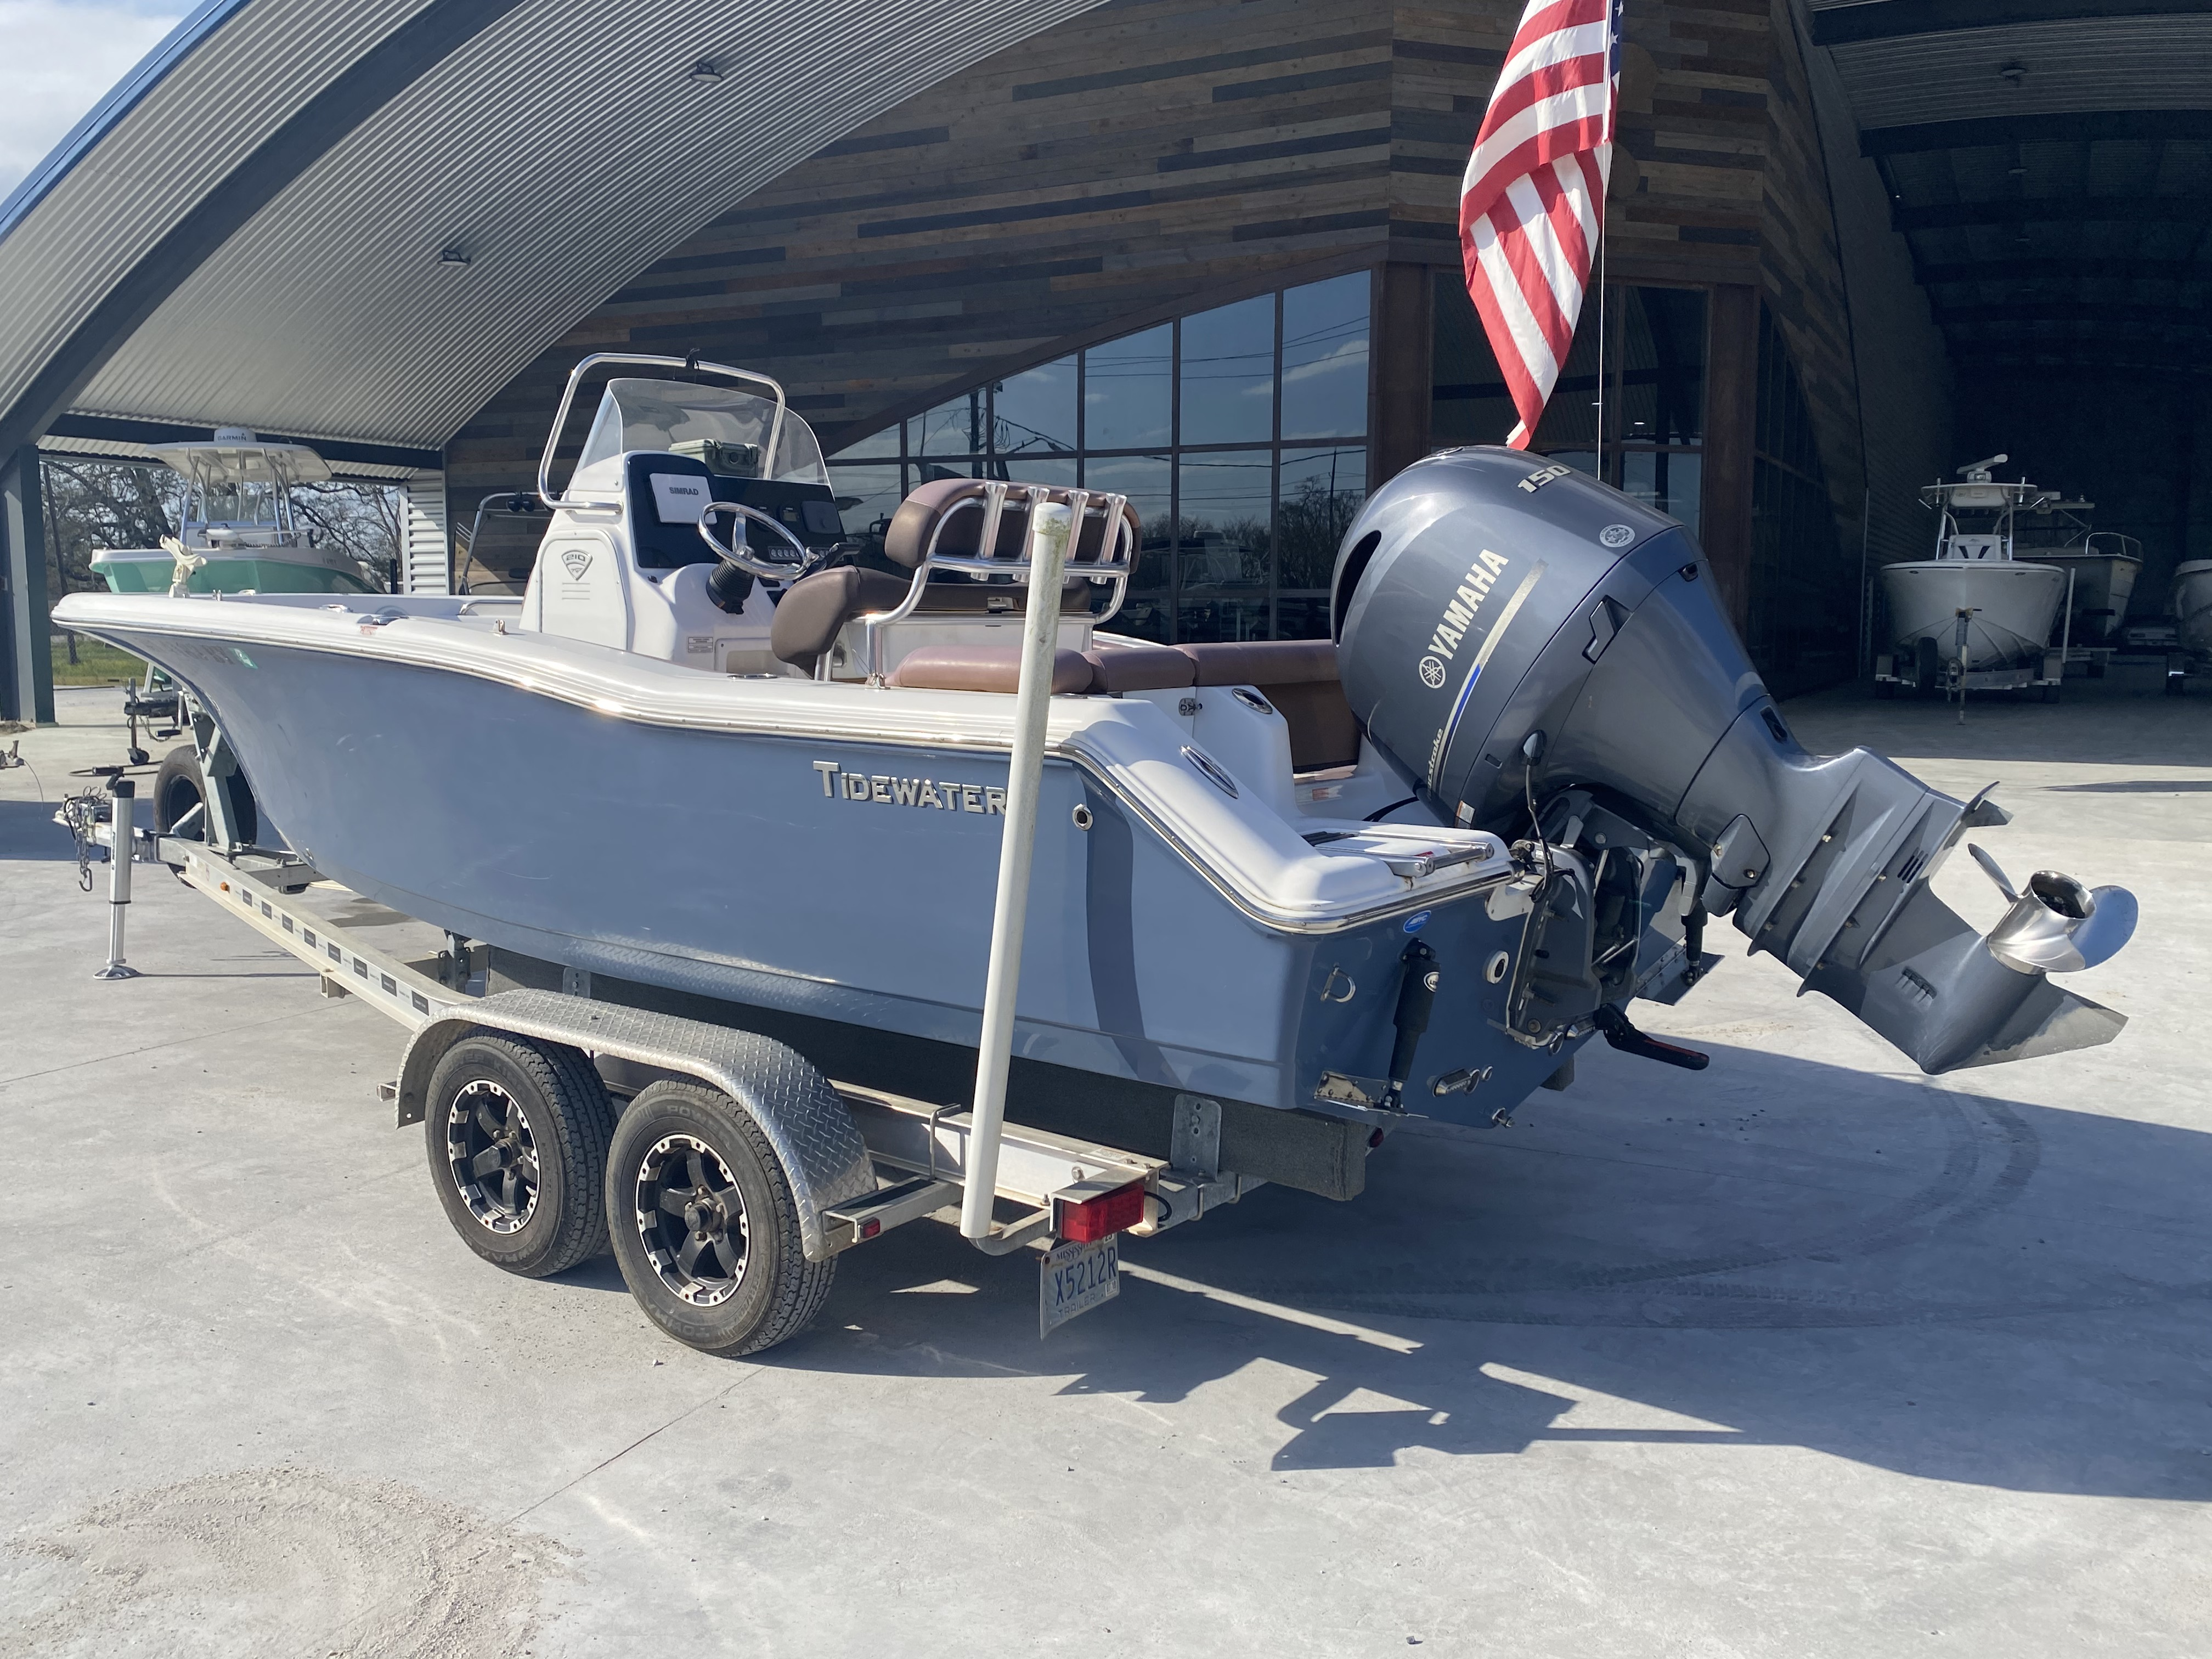 2017 Tidewater boat for sale, model of the boat is 210 & Image # 10 of 19